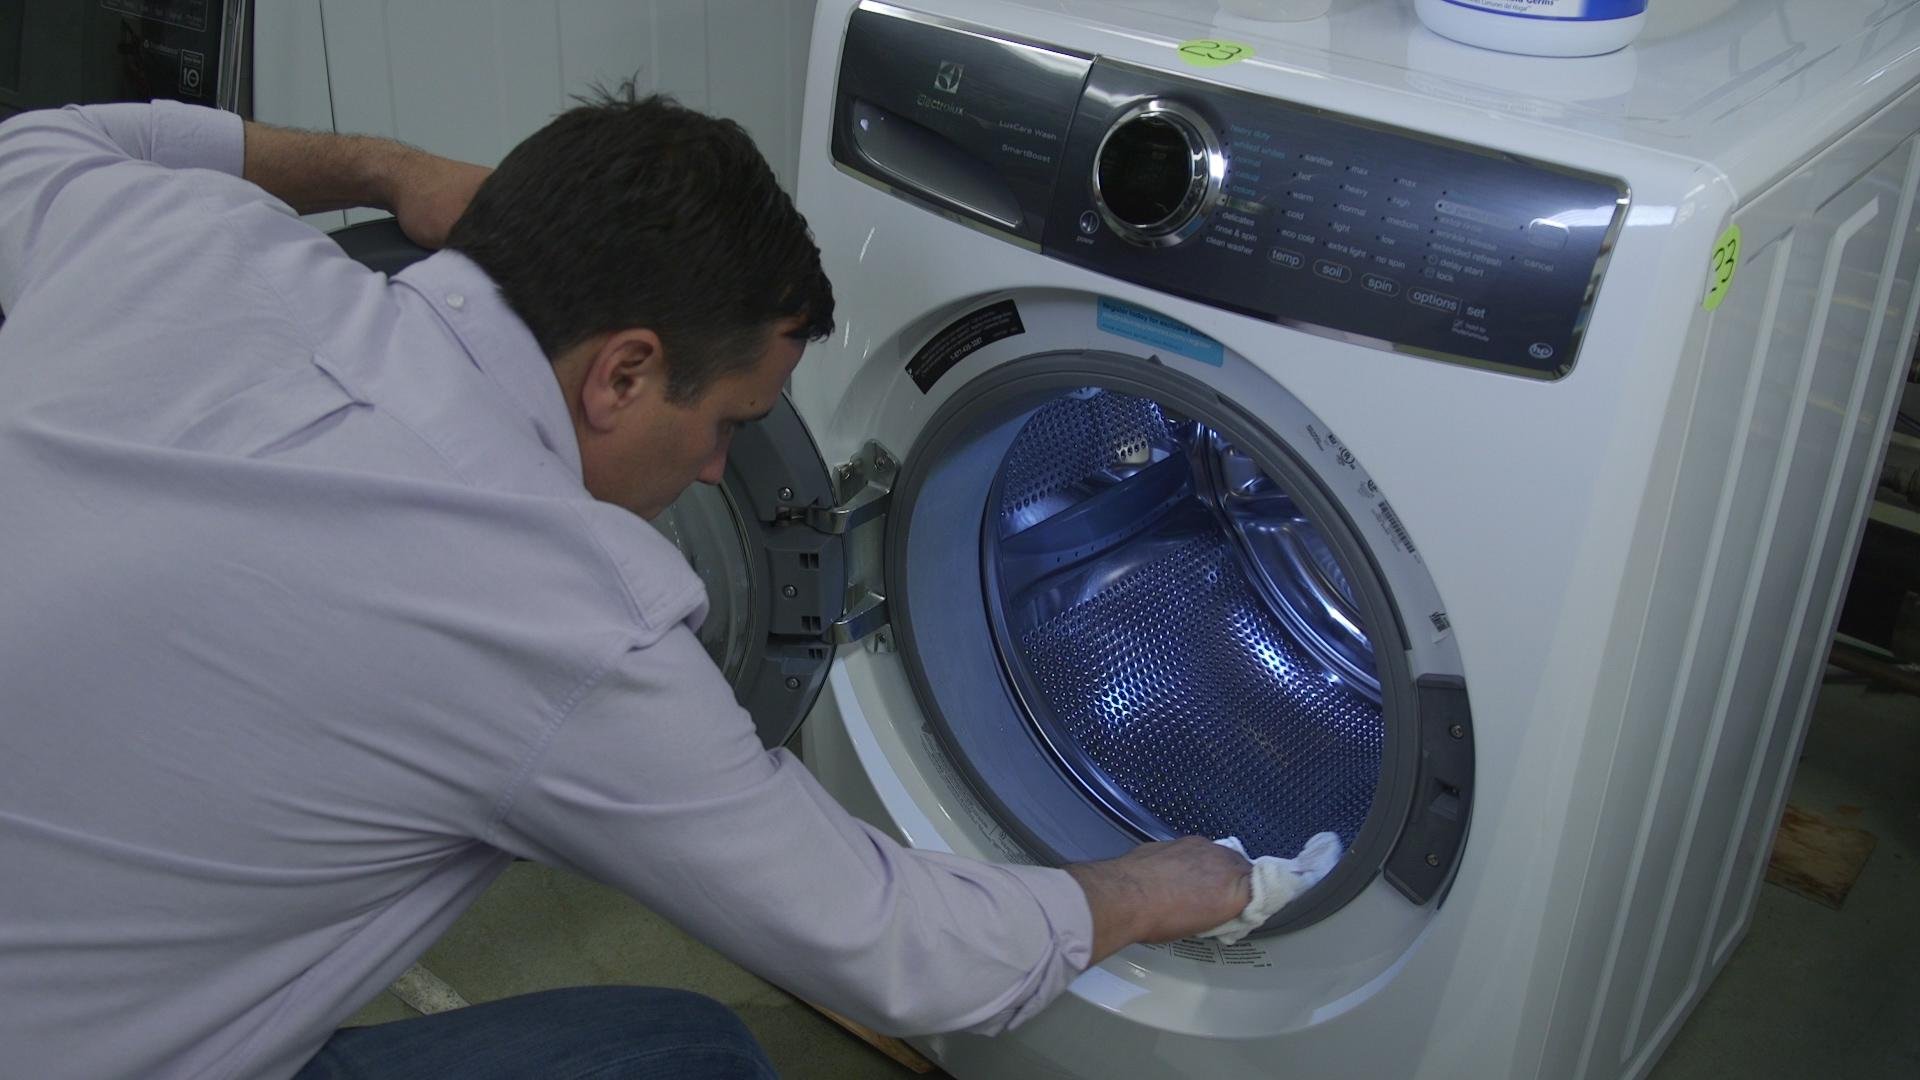 How to Clean Your Washing Machine - Consumer Reports